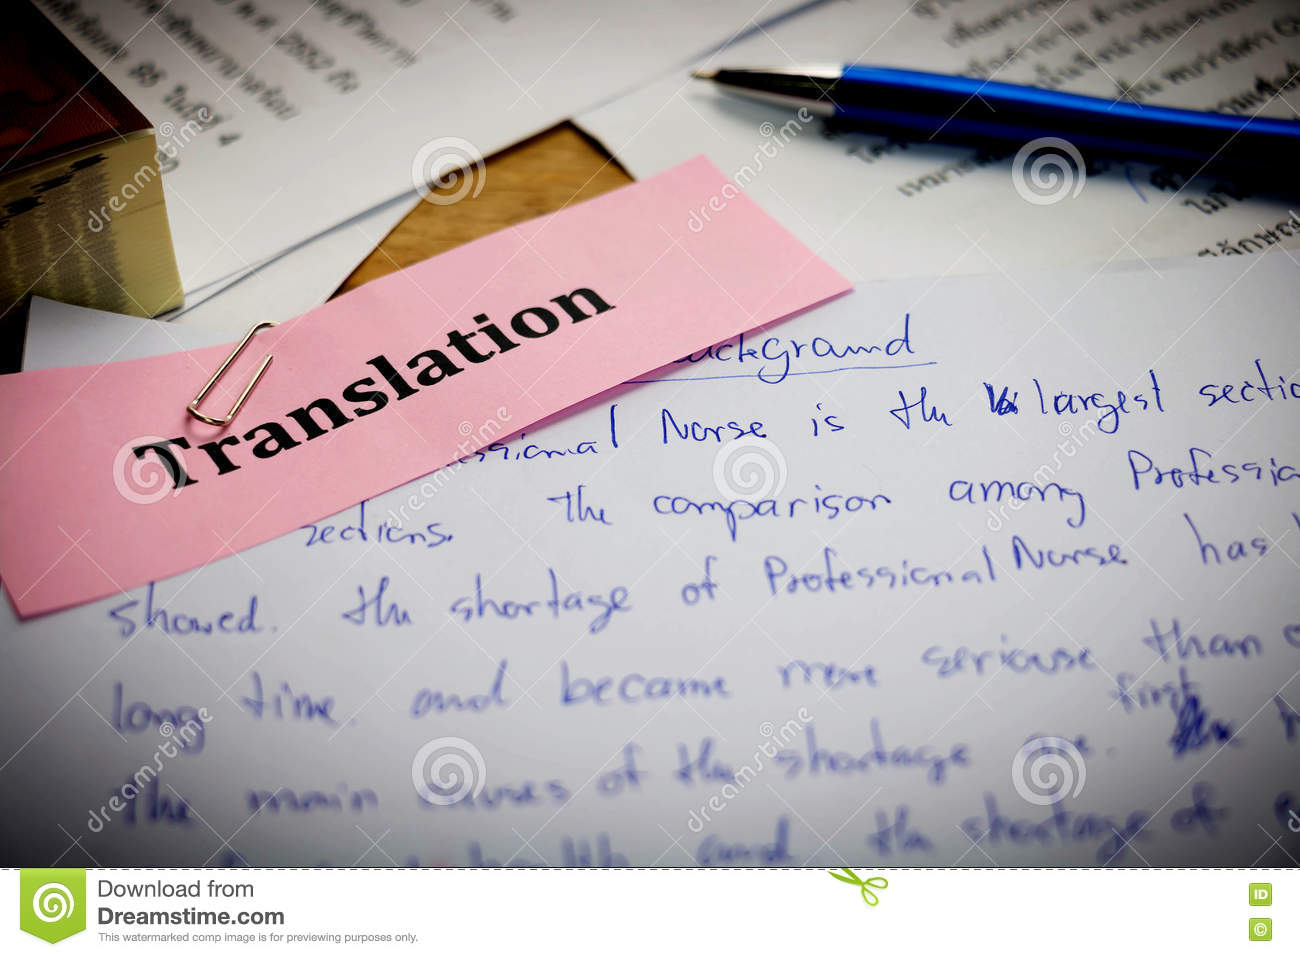 Papier de traduction sur le bureau en bois photo stock image du